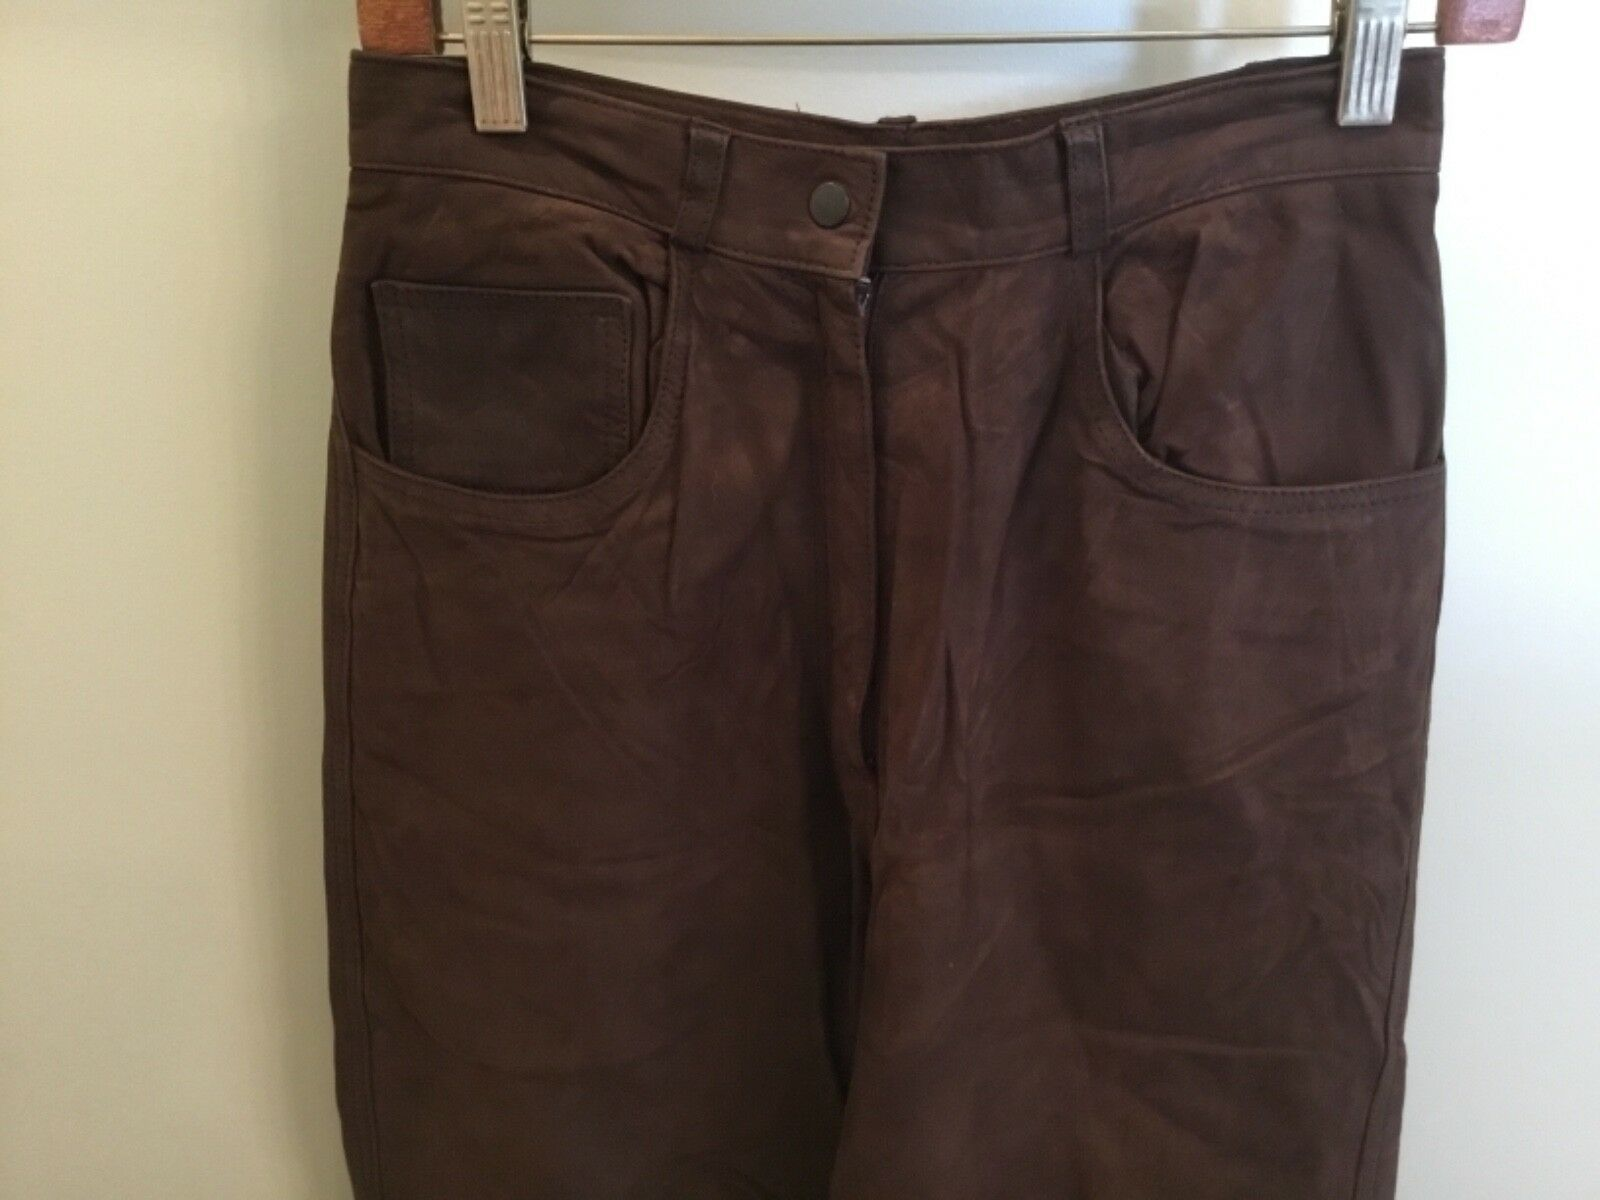 Manuel Herrero Peletero Madrid Long Pants Women's Brown Suede Lined 6 4